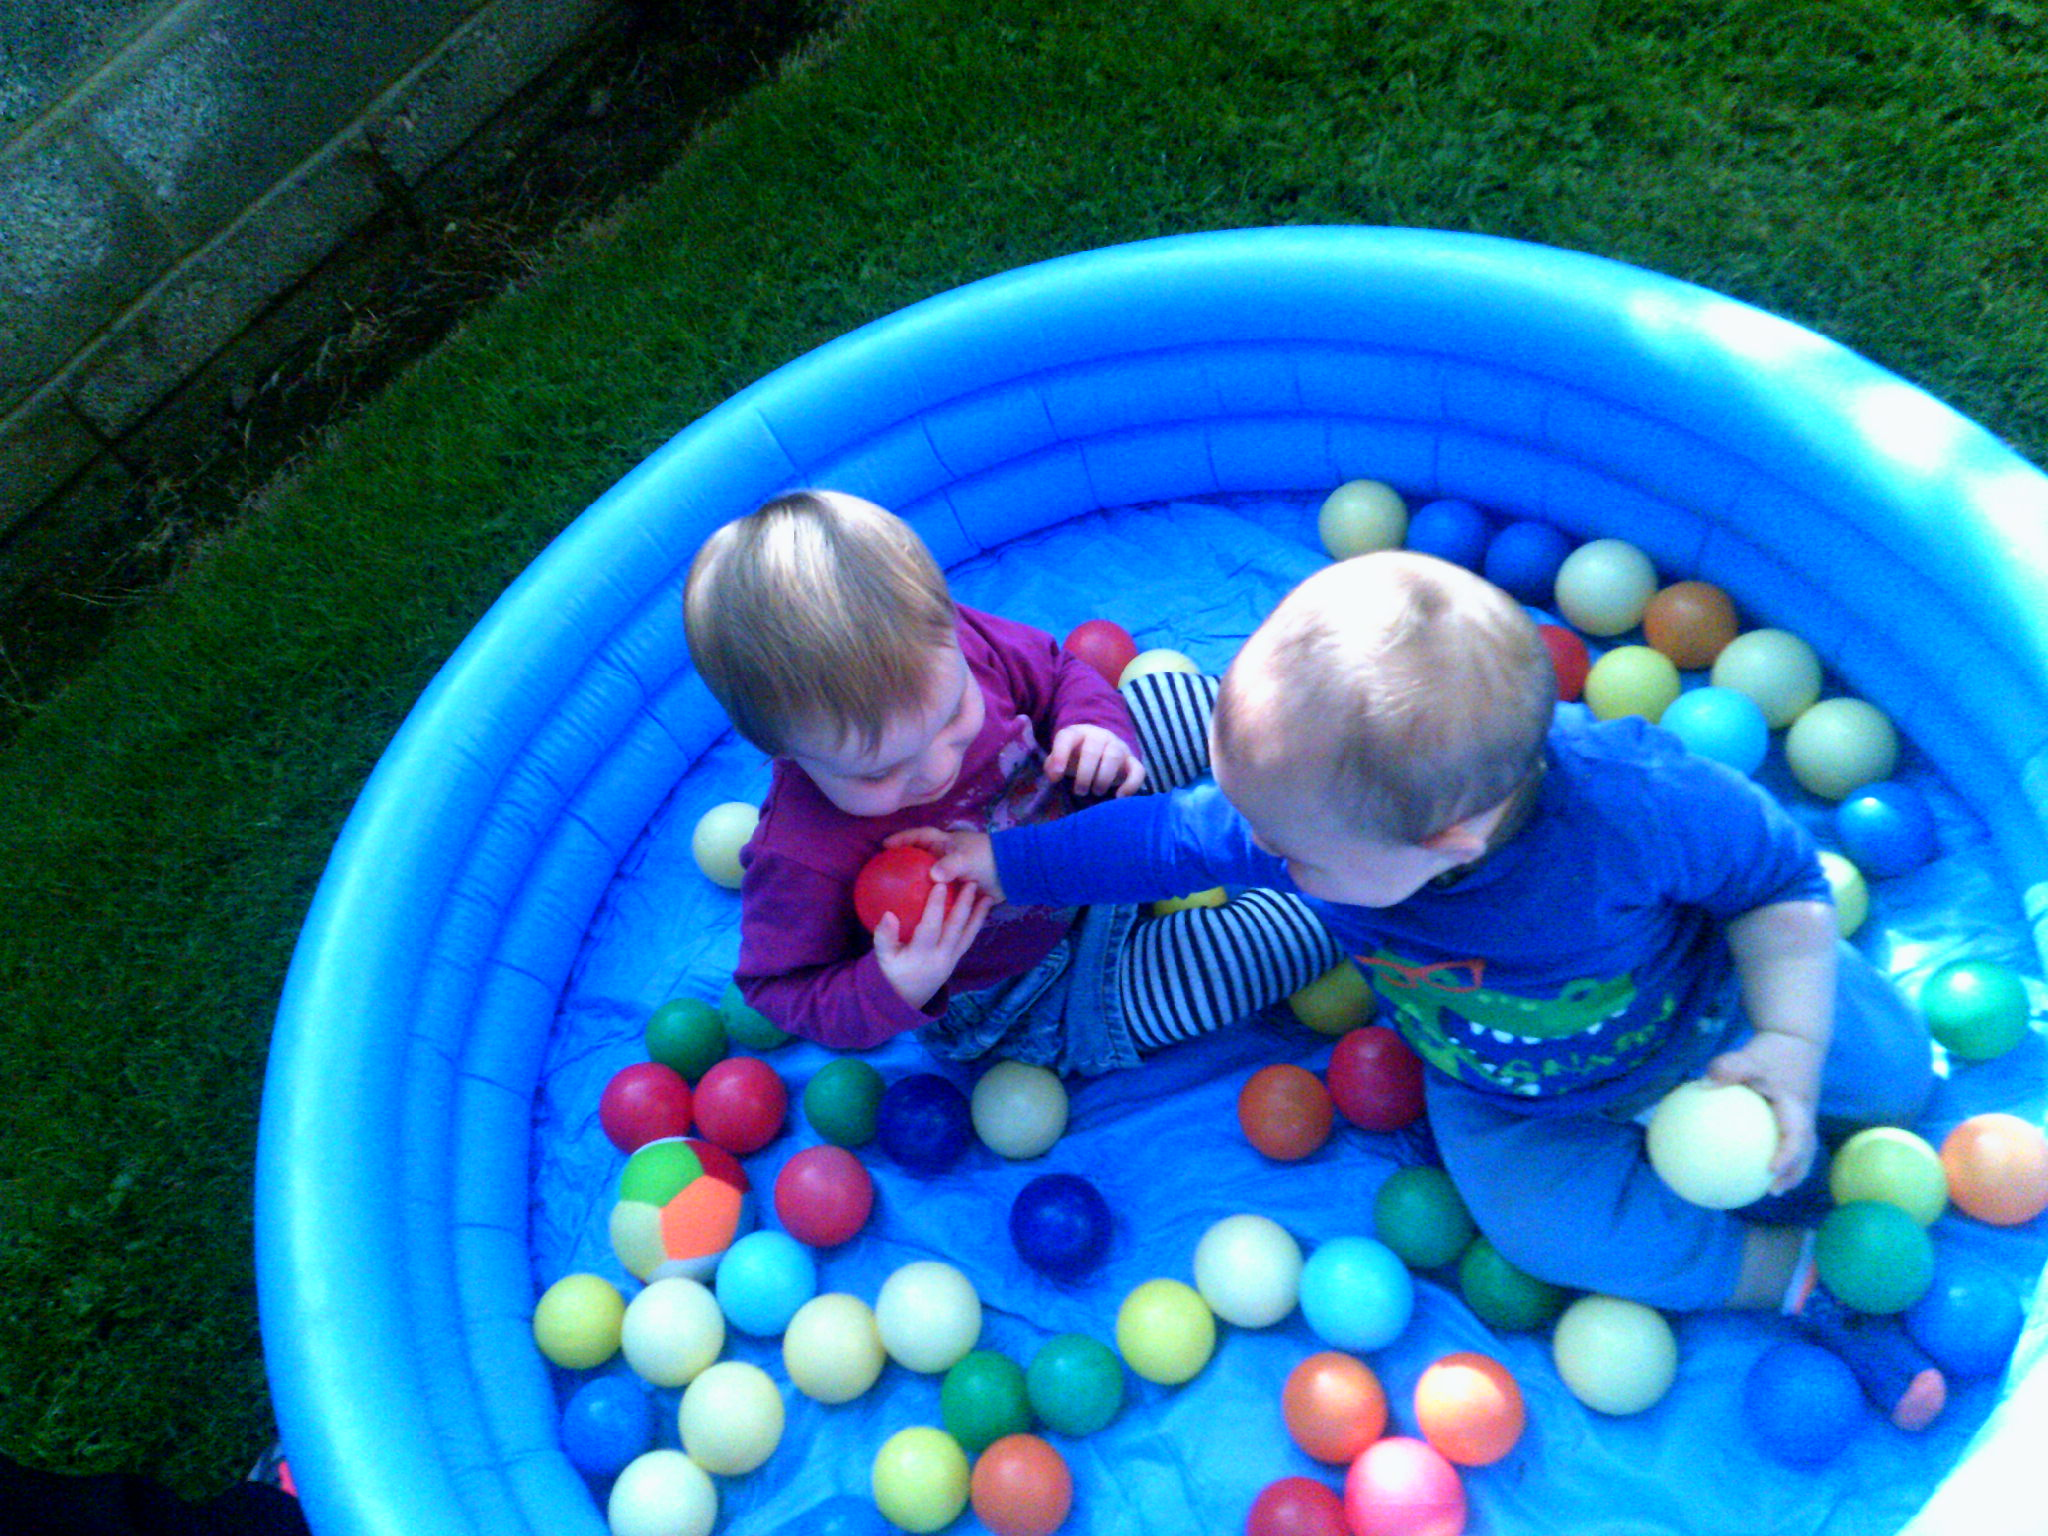 Sunny September days in Crawford Childcare!